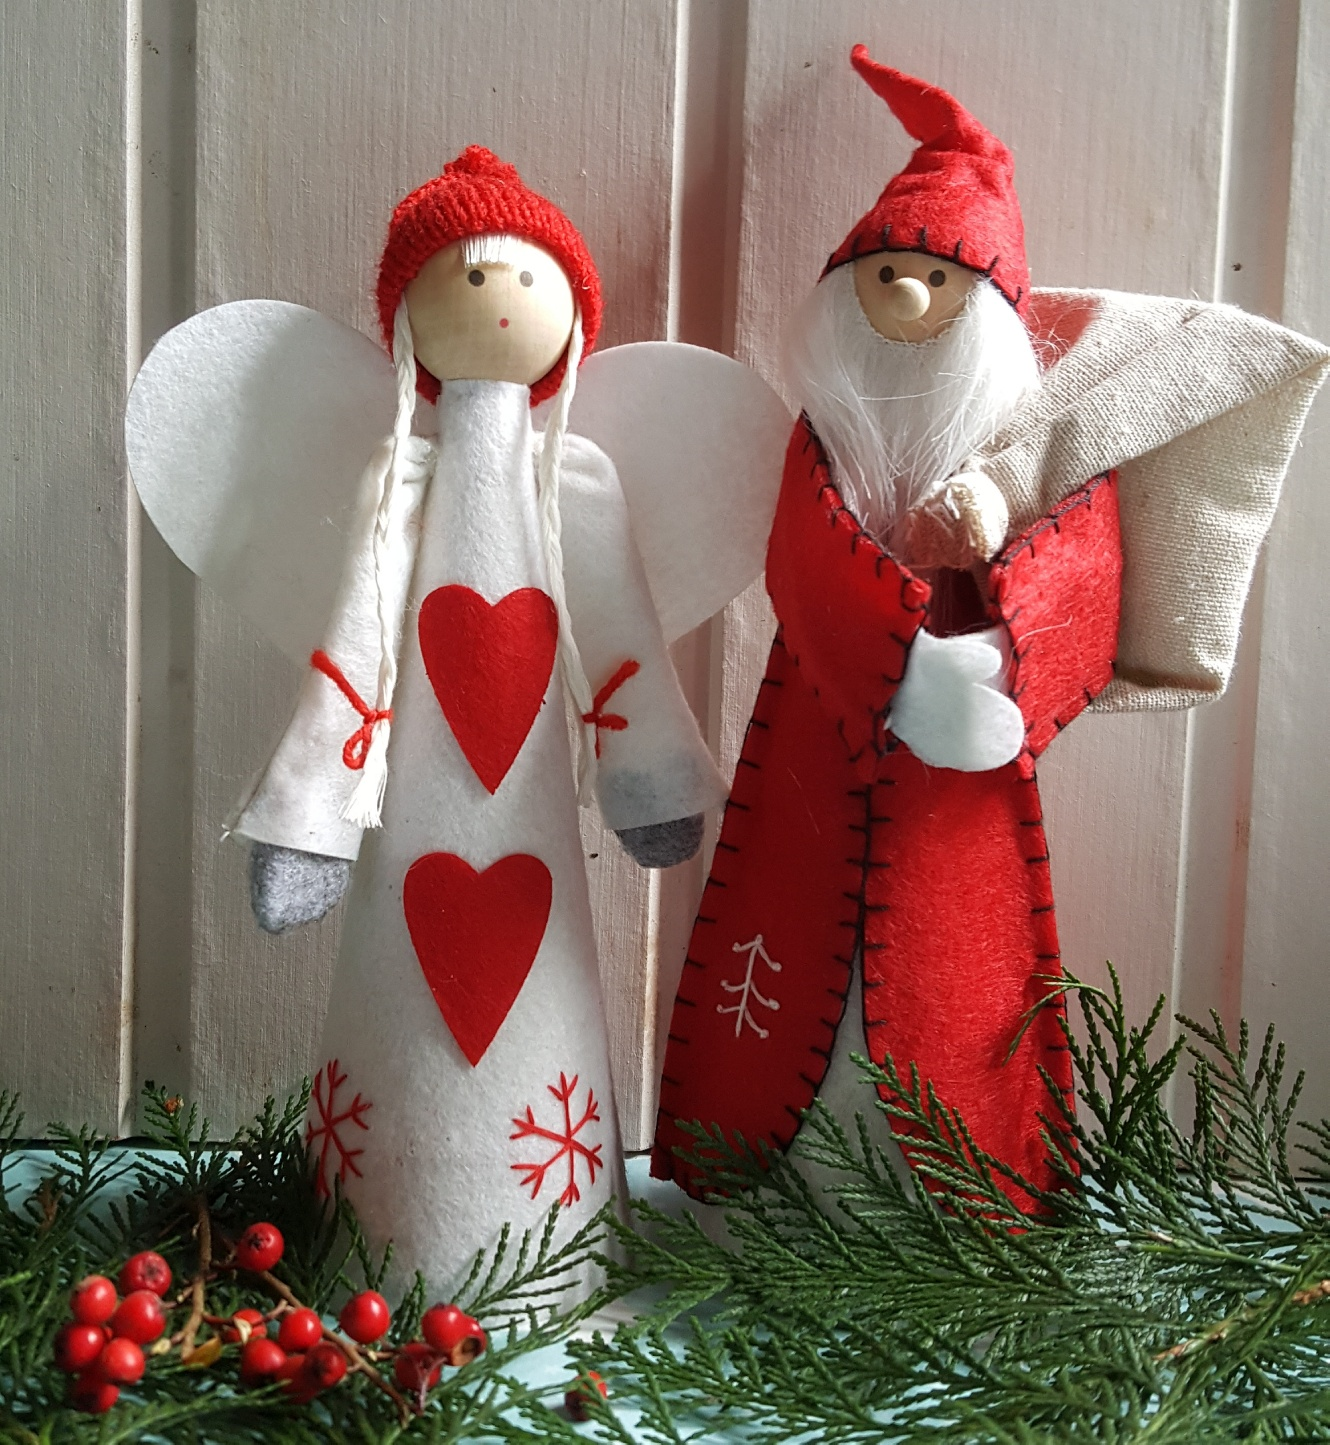 wooden p clara cm decor by claus decorations santa shop collection christmas exclusive bojesen mrs a figurines kay